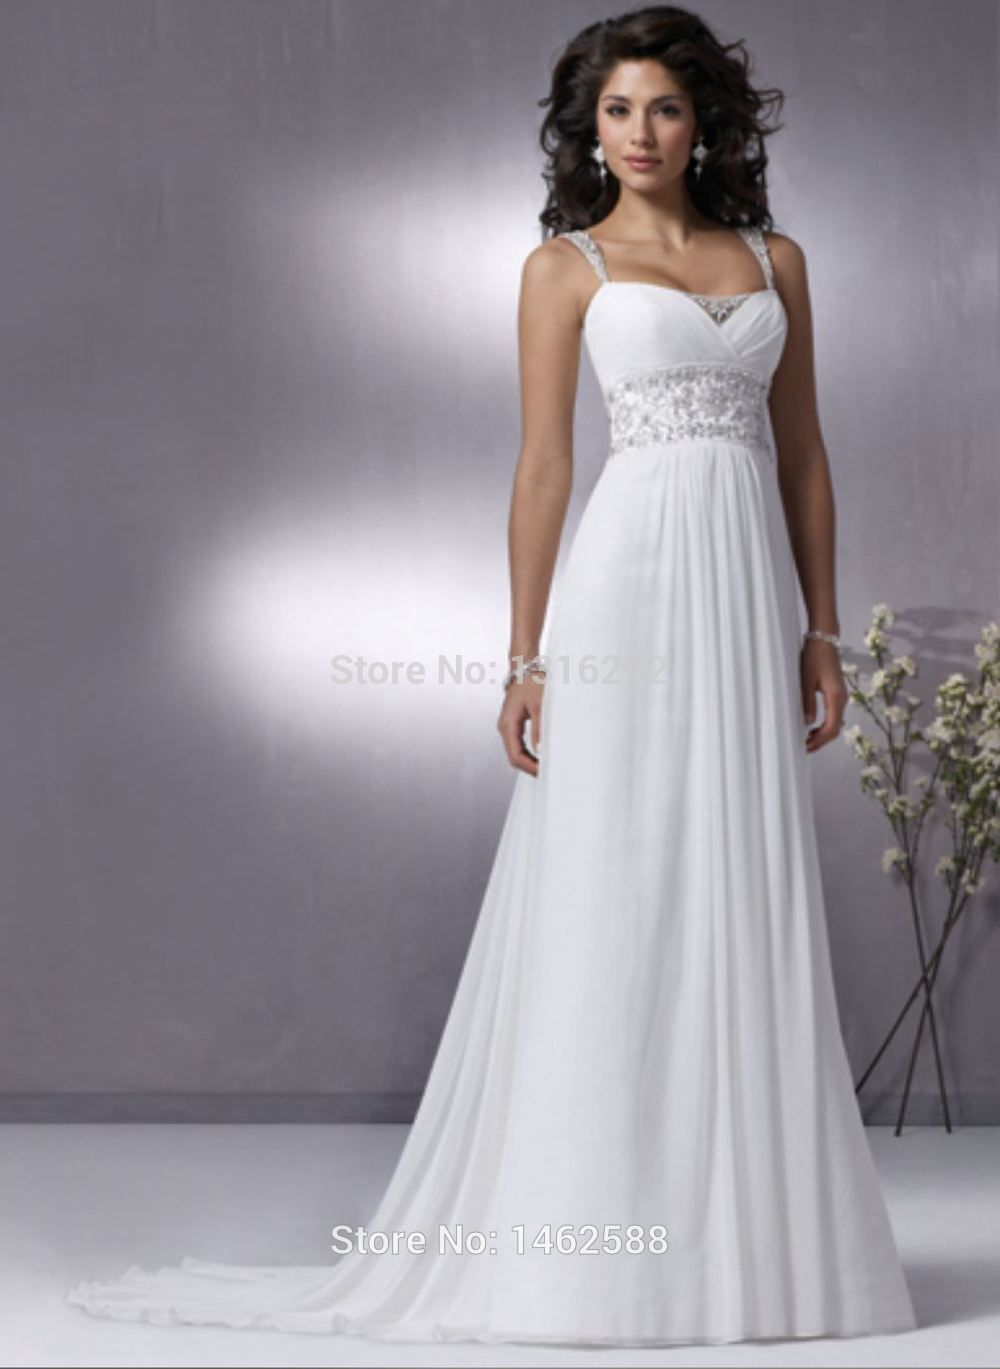 Cheap dress neck buy quality dress ball gown directly from china